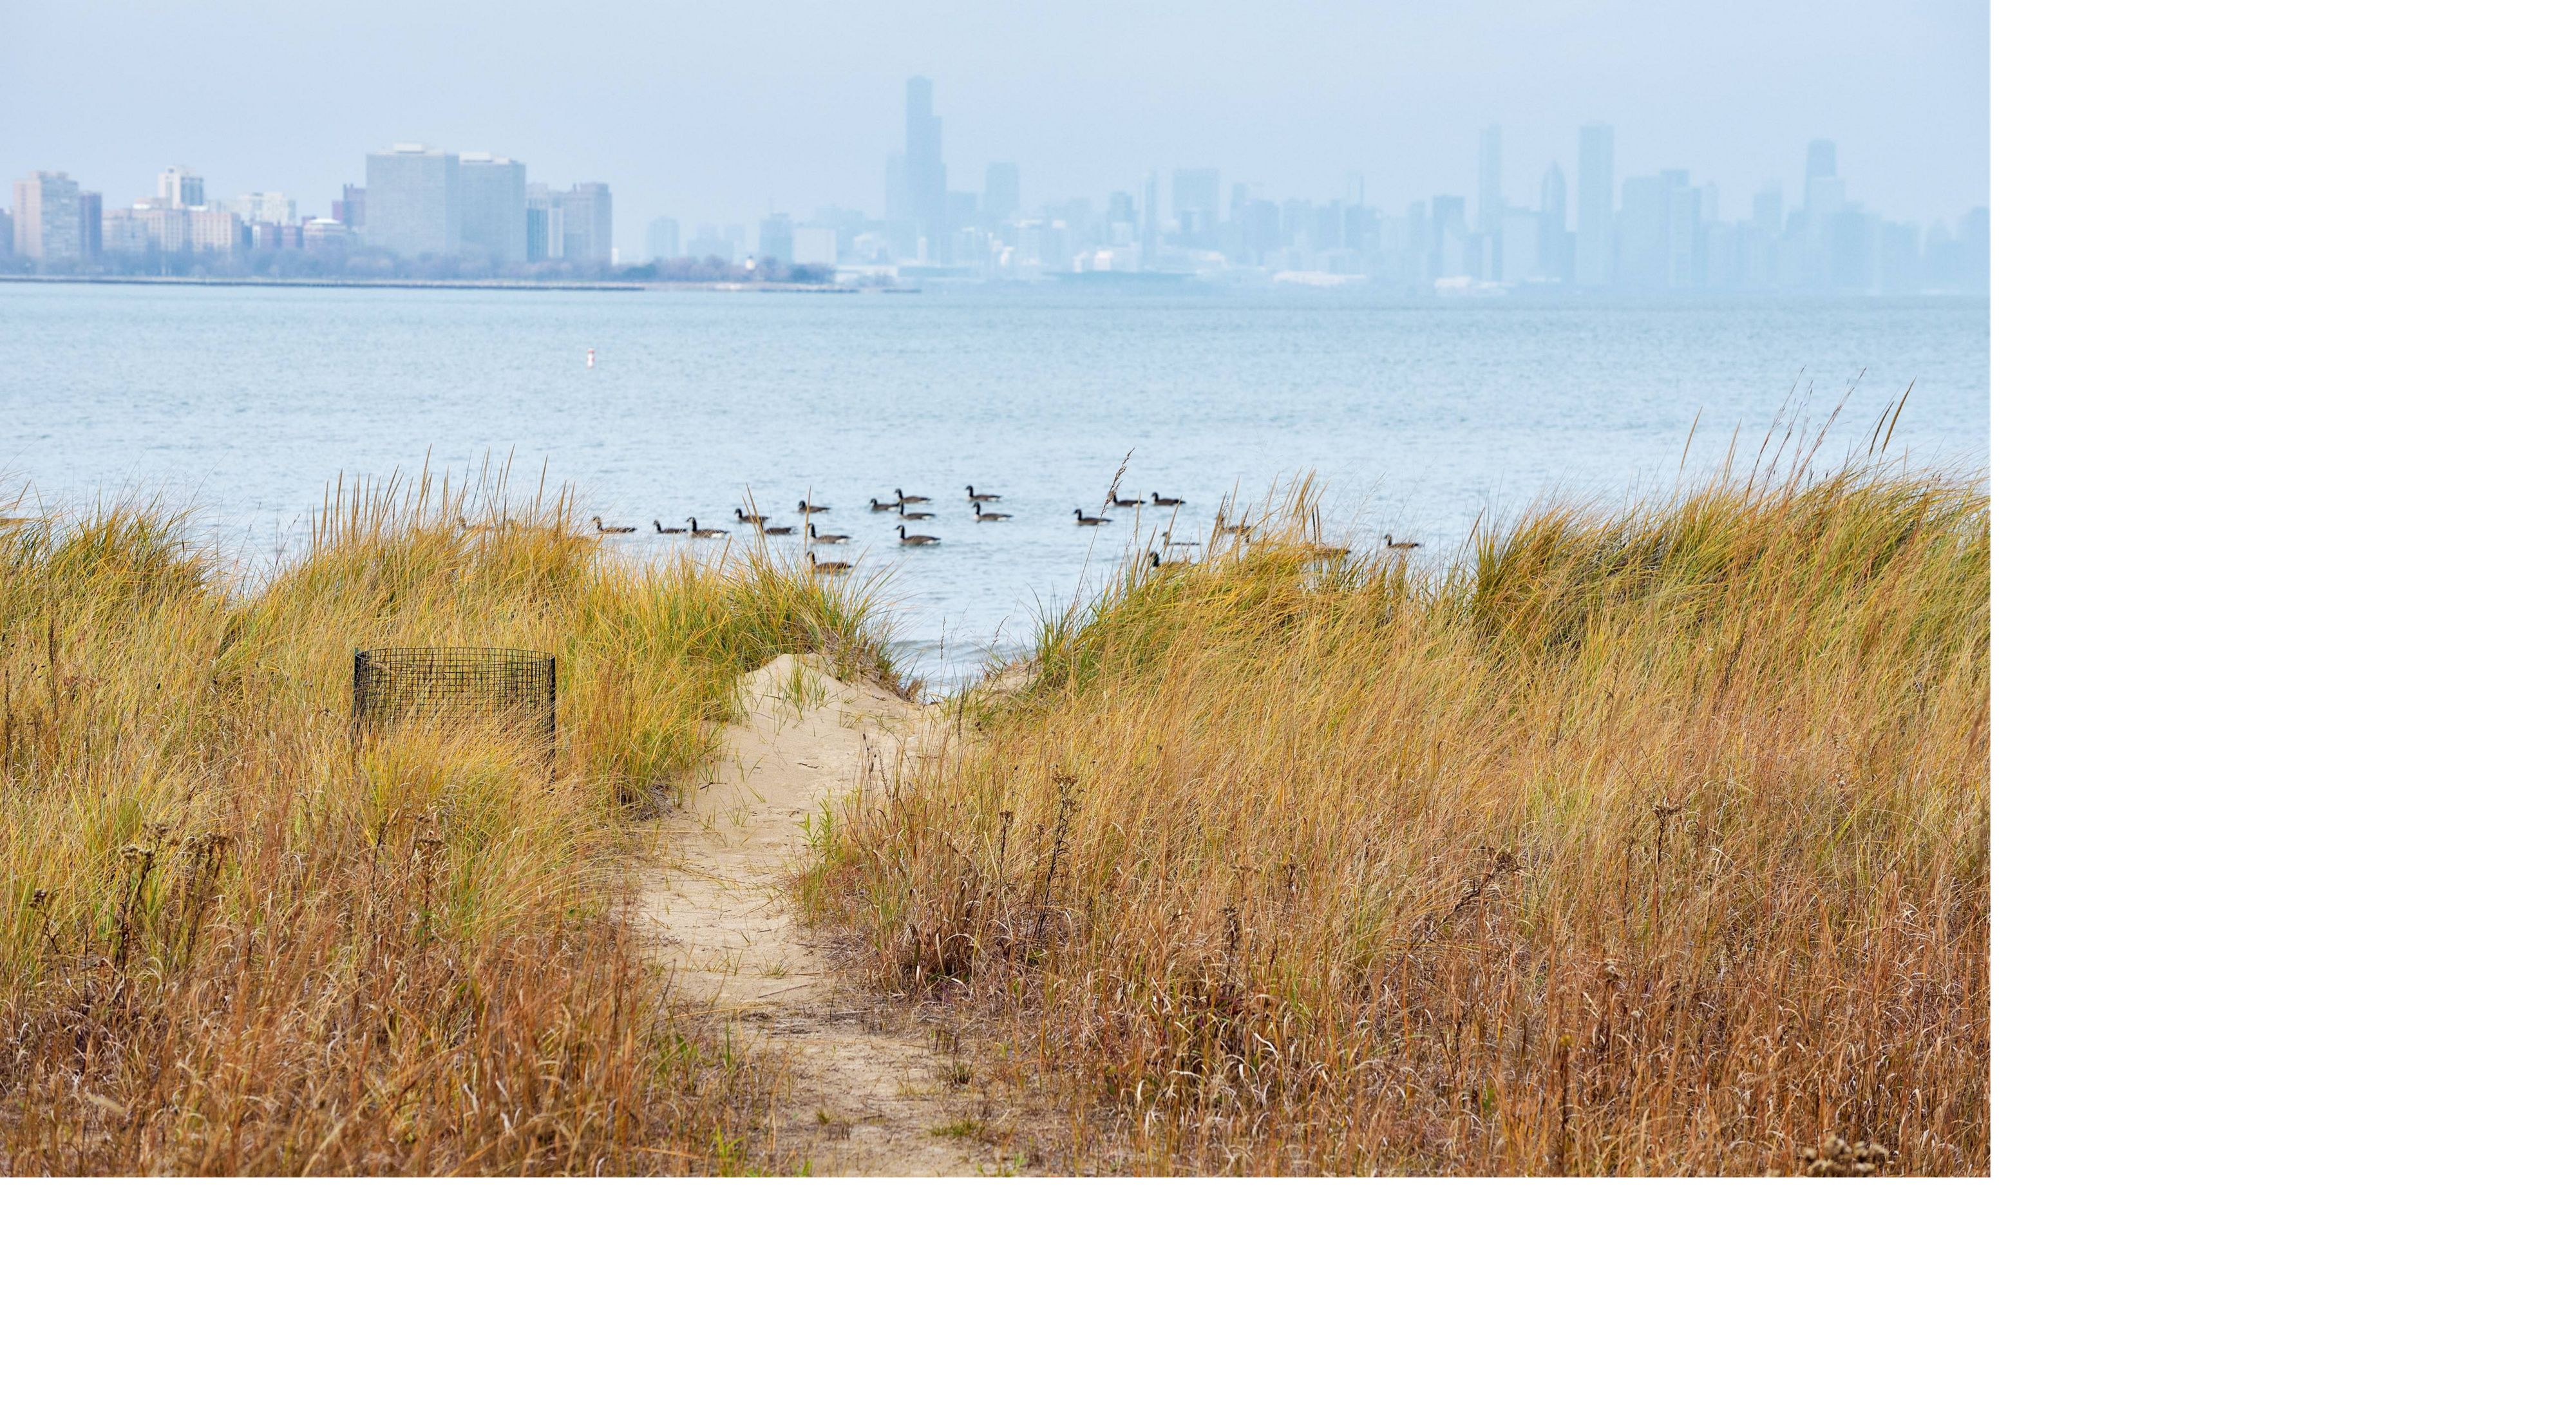 A pathway through a grassy area overlooking a body of water and the Chicago skyline at the Rainbow Beach Park Natural Area.